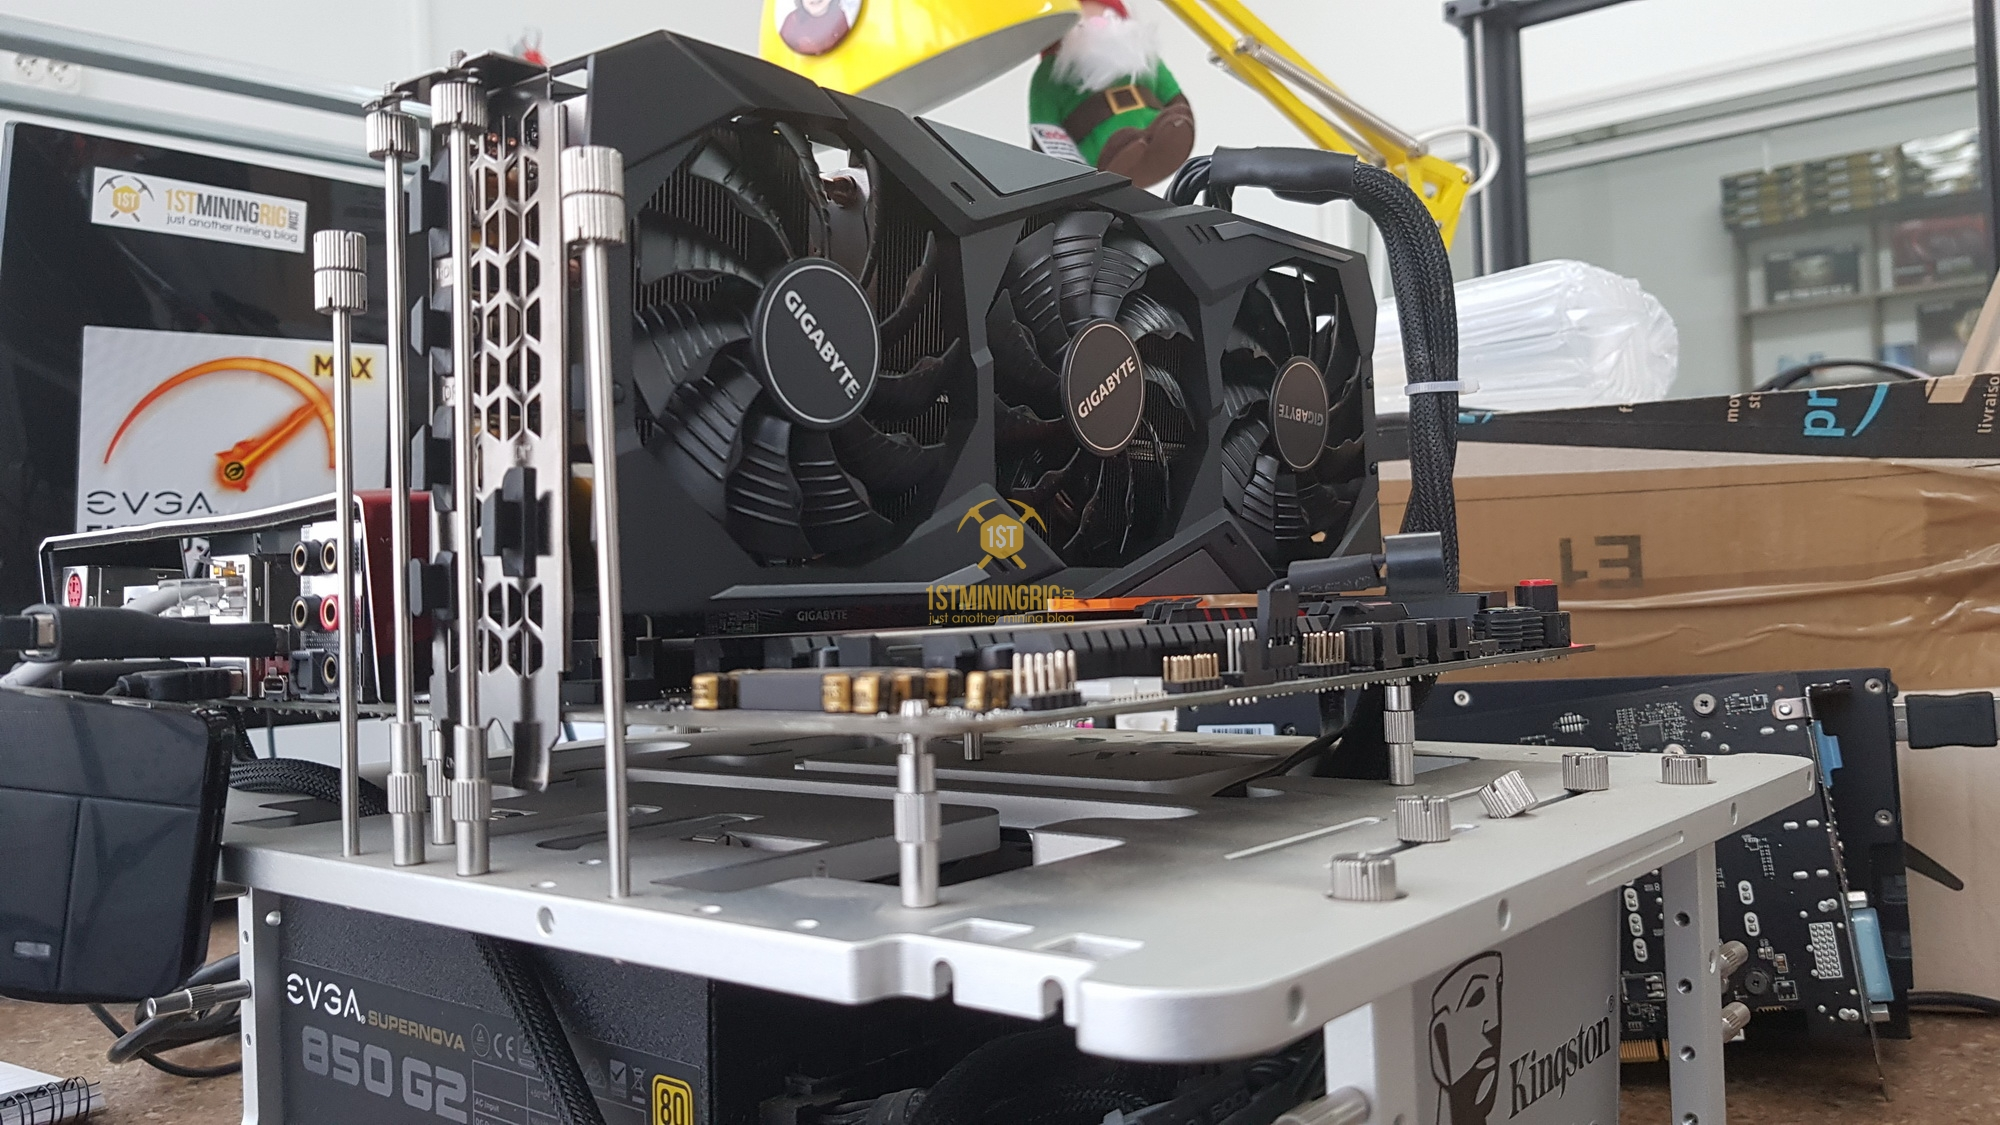 Gigabyte RTX 2080 Ti Mining Performance Review - 1st Mining Rig